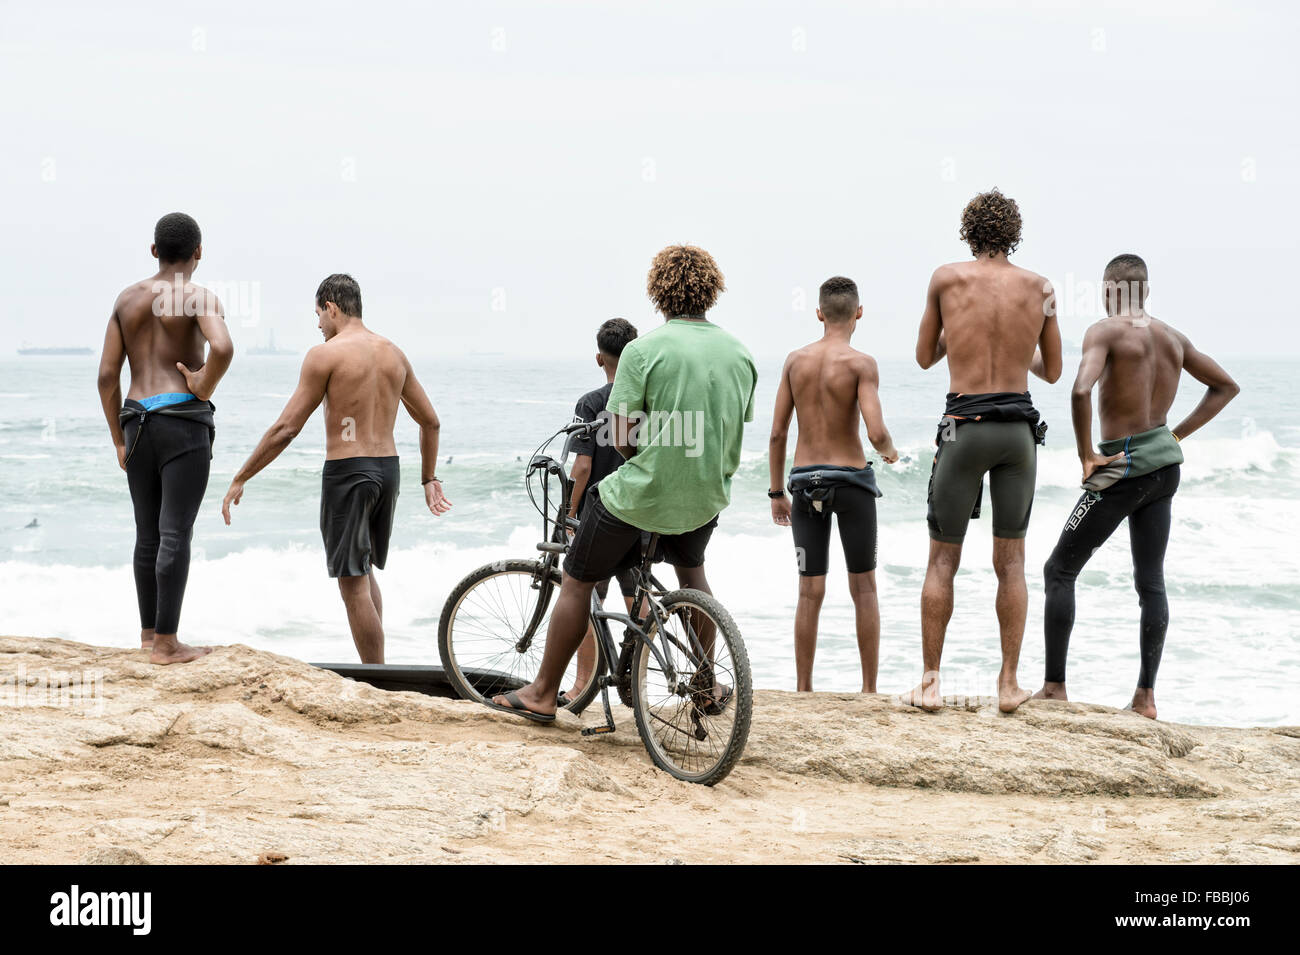 RIO DE JANEIRO, BRAZIL - OCTOBER 22, 2015: Brazilian surfers in wetsuits stand looking at incoming surf waves at - Stock Image